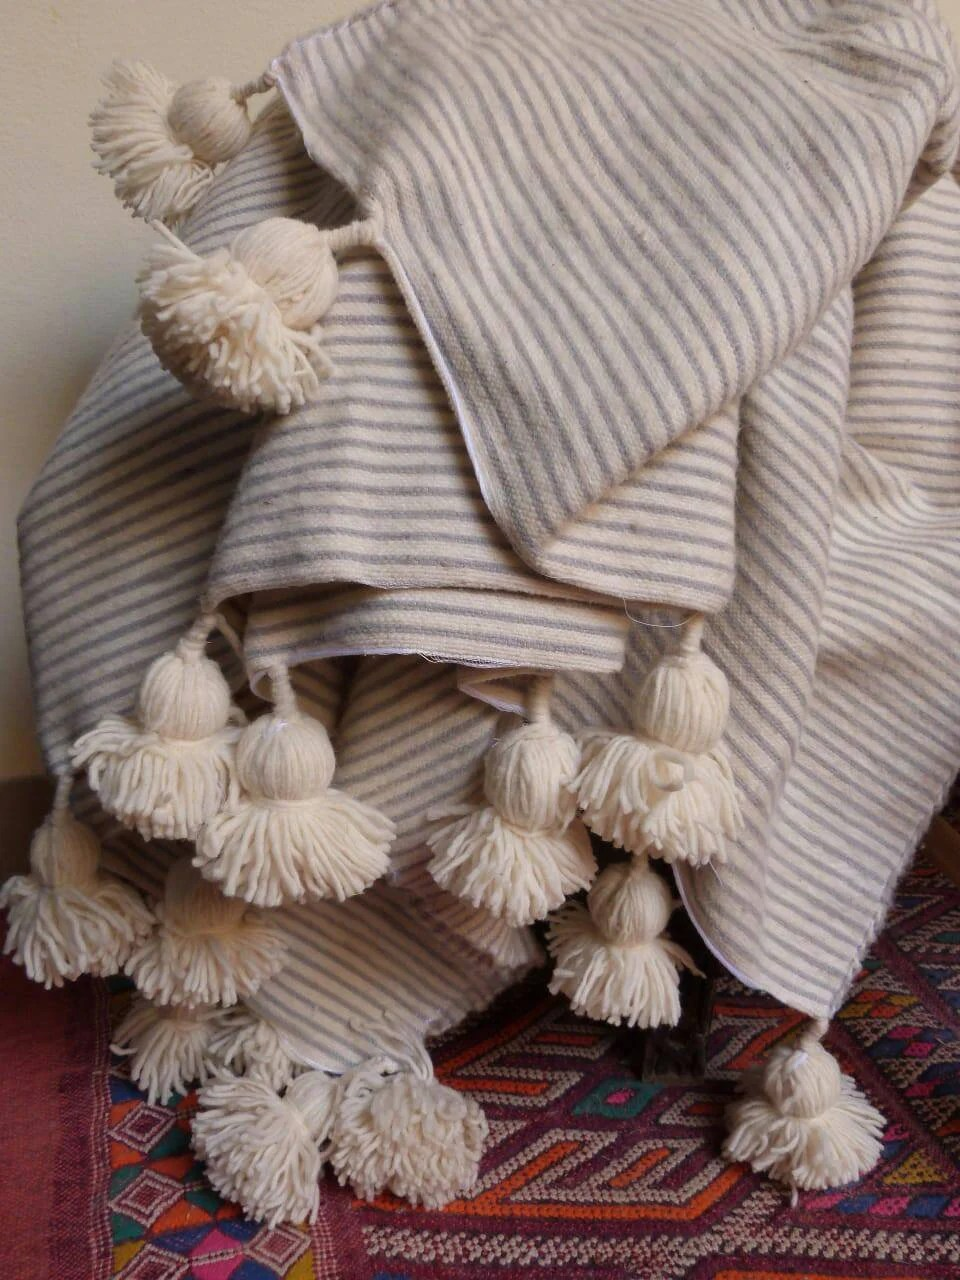 Throw Blankets Moroccan Pom Pom Blankets With Tassels Throw Blankets Striped Bed Blankets Cover Bed Wool Blankets Handmade Blanket White Gray Blanket